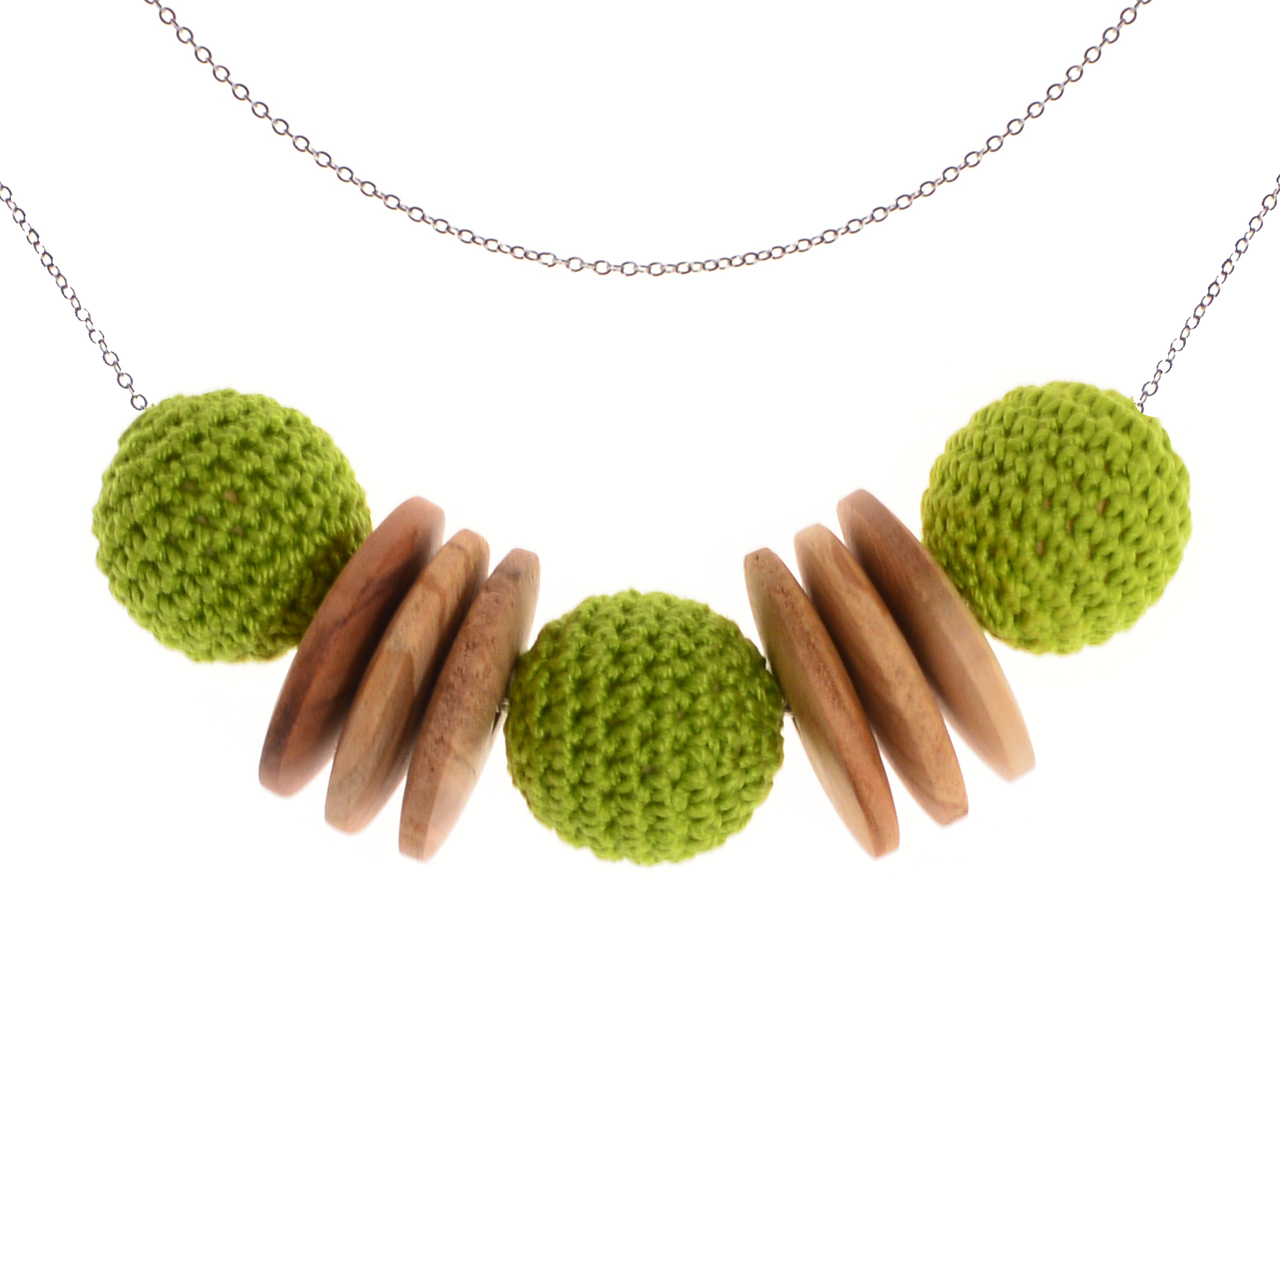 Mon Bijou - Necklace Elegance Nature - Green | The Design Gift Shop